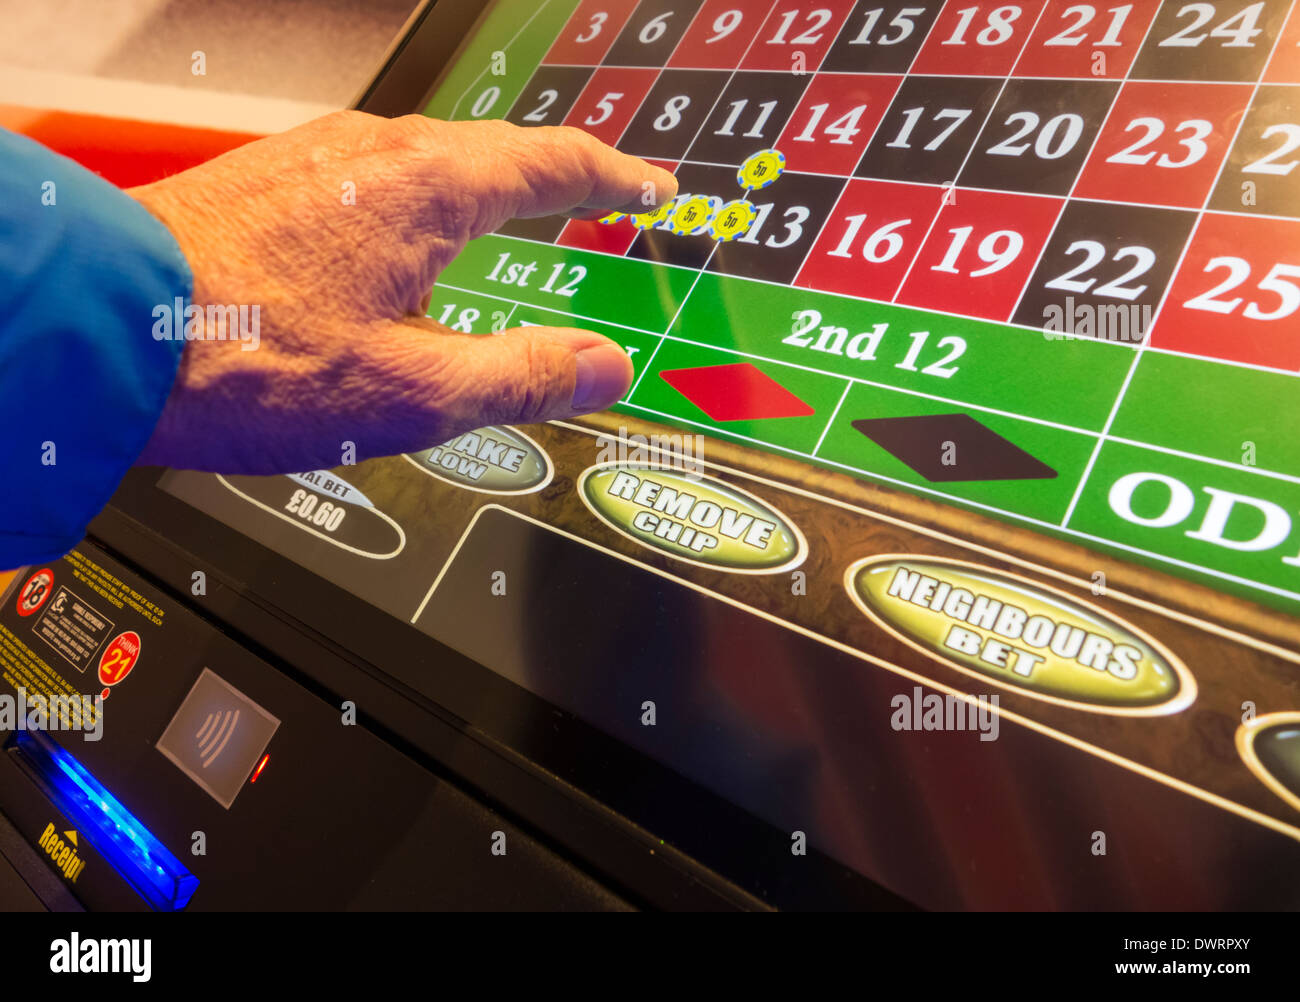 Fixed odds roulette machine (FOBT fixed odds betting terminal) in Bookmakers. UK - Stock Image